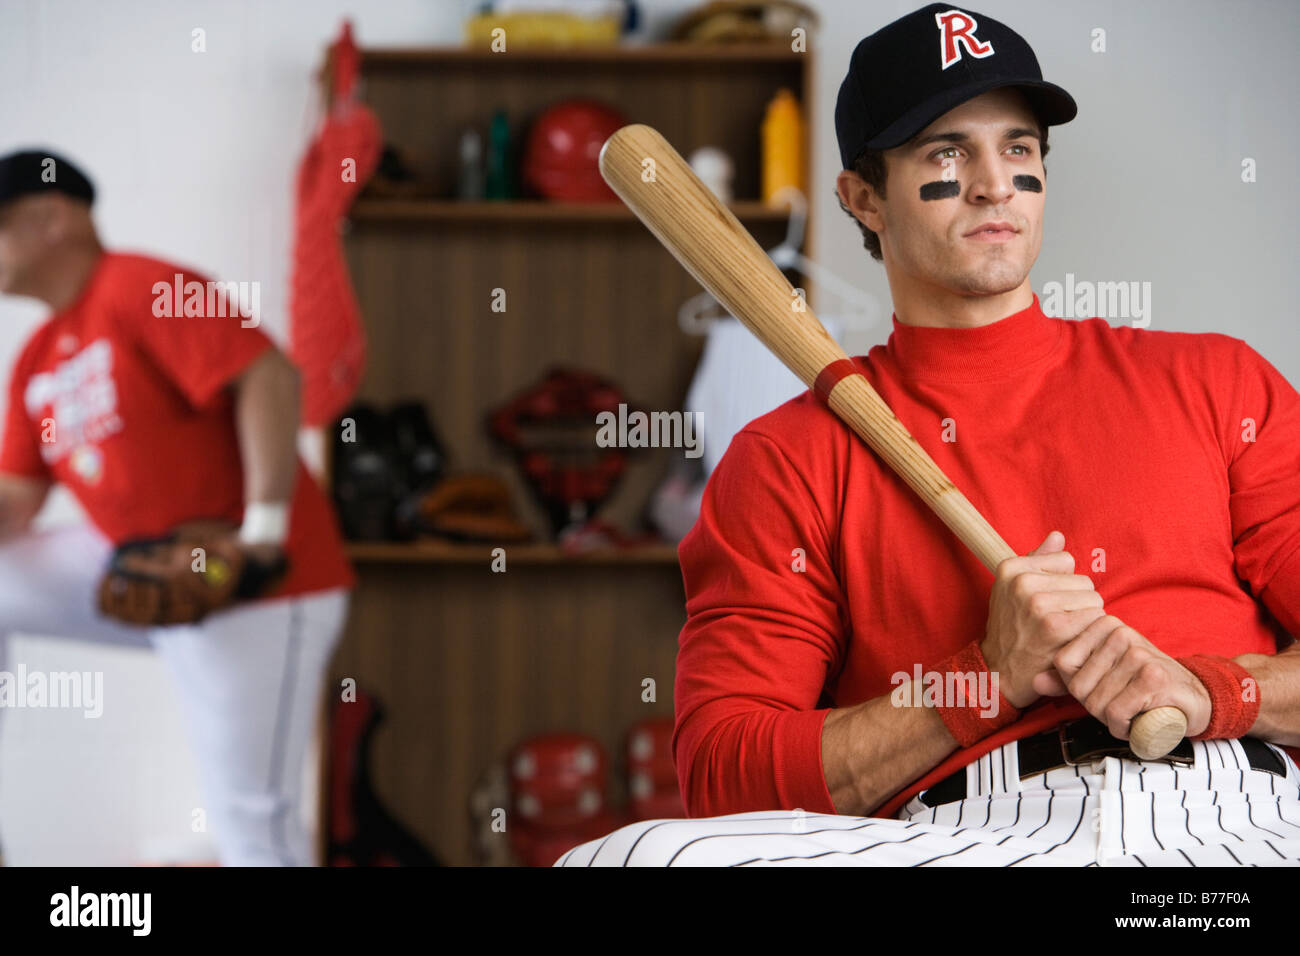 Baseball Player Holding Bat Locker Room